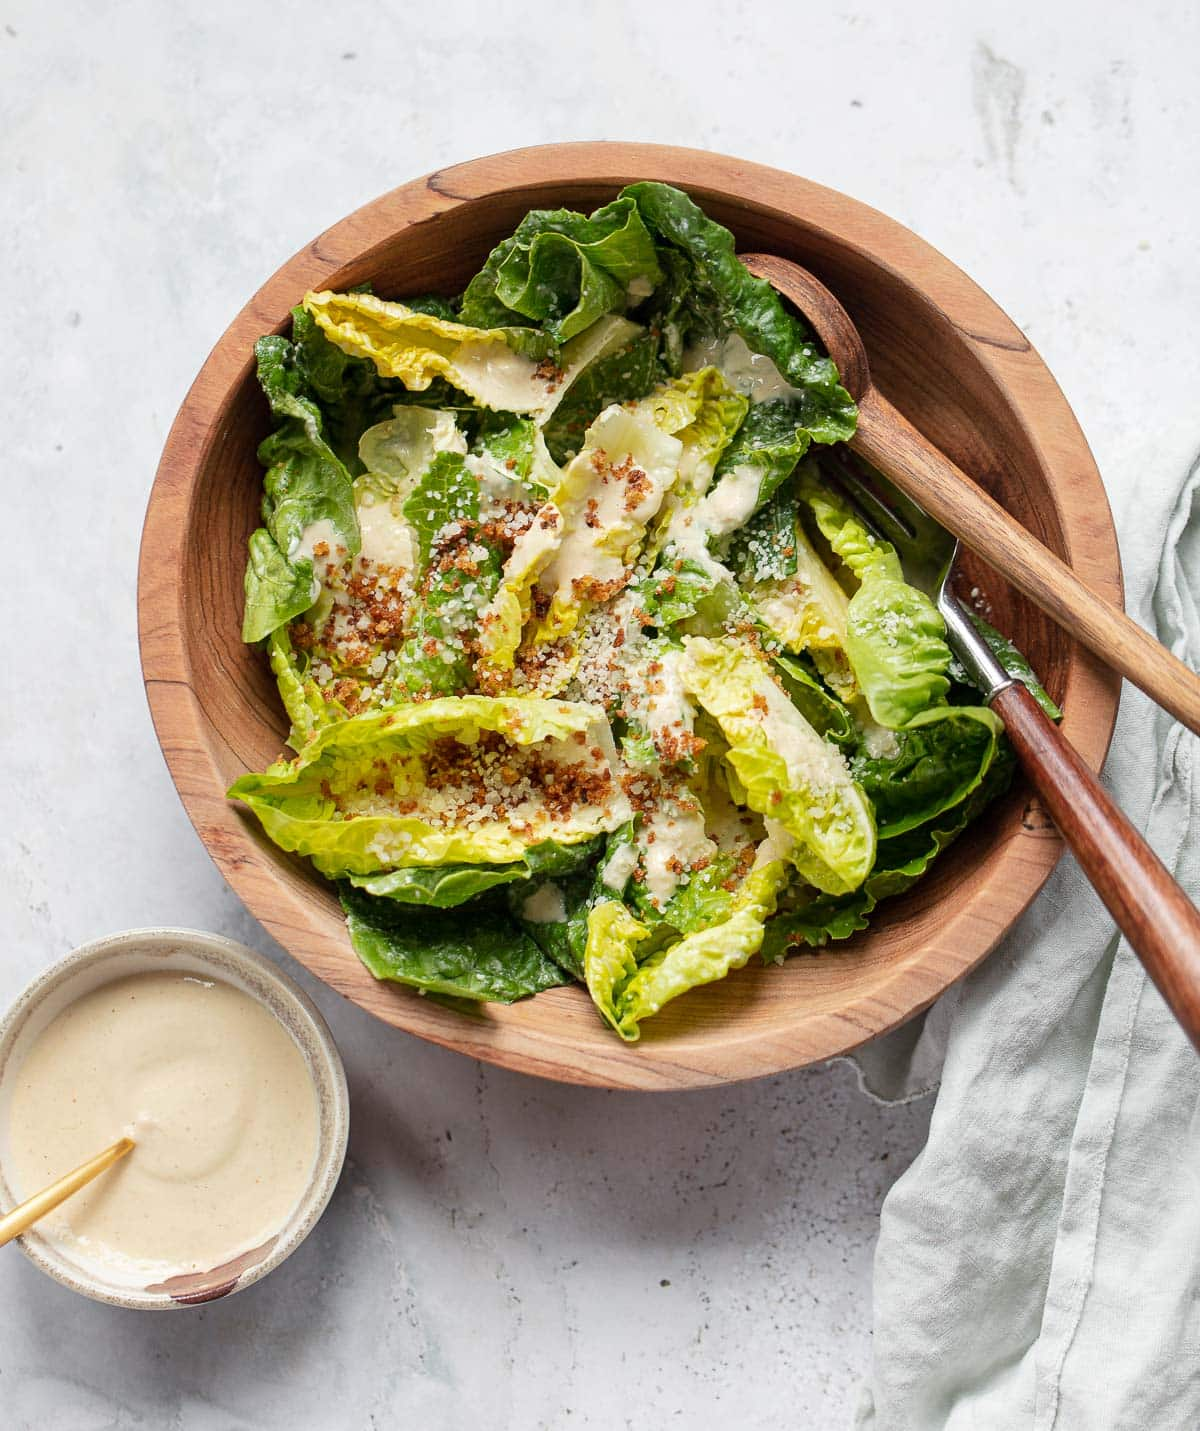 Romaine lettuce leaves in a wooden salad bowl with creamy tahini Caesar salad dressing, olive oil breadcrumbs and grated Parmesan cheese.